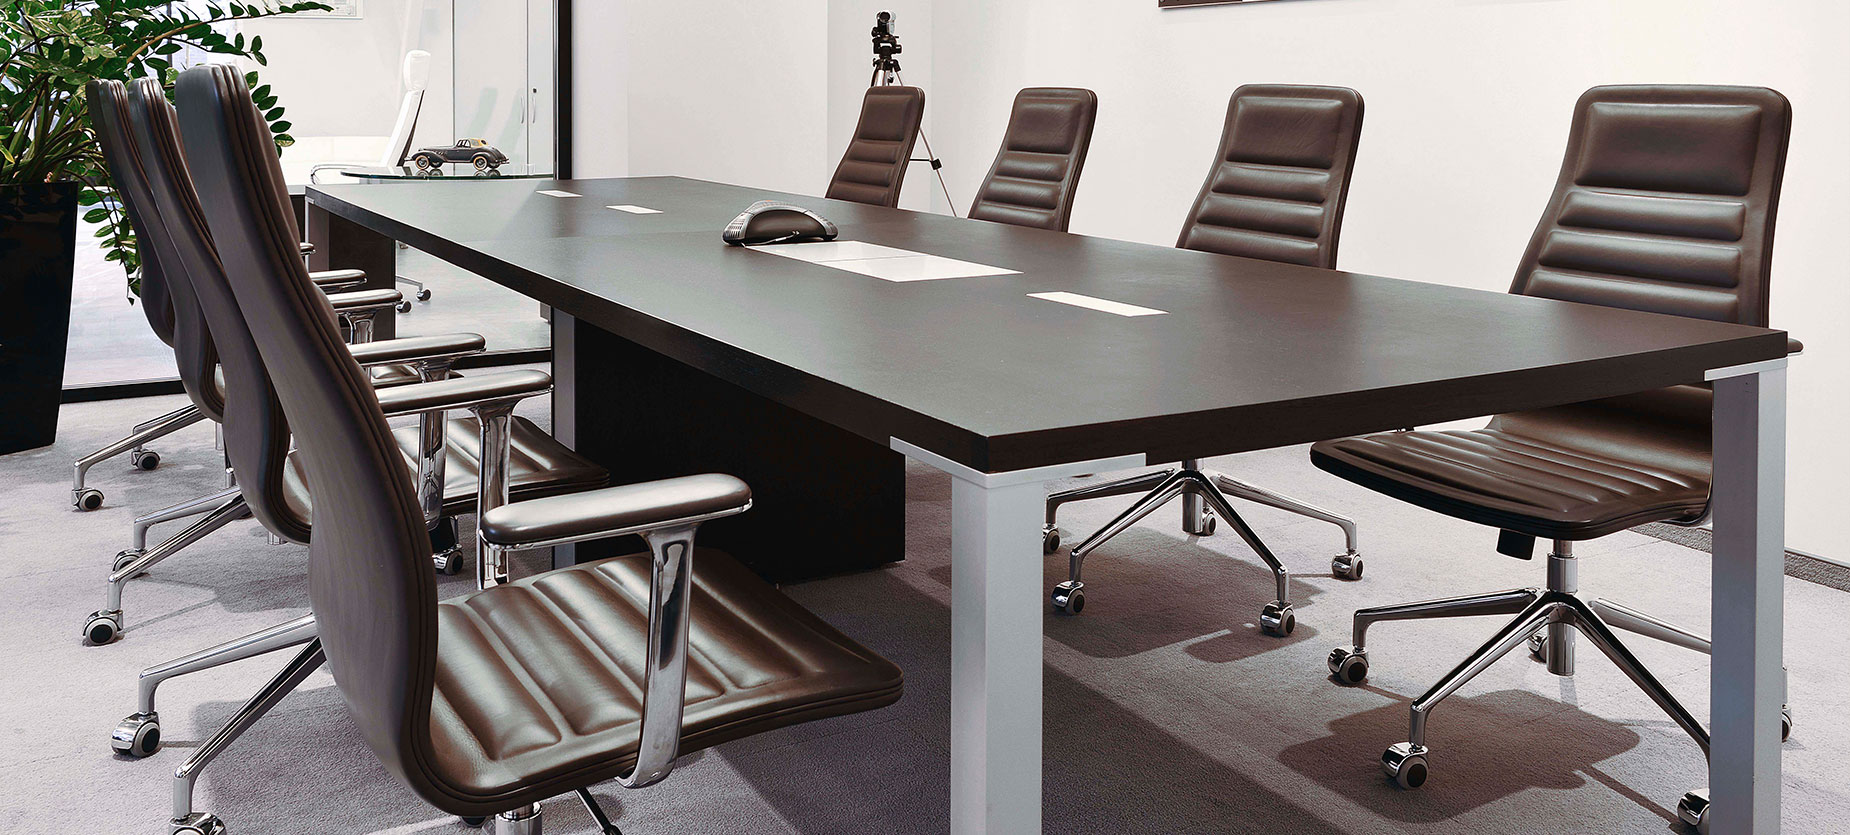 The Conference room is usually where clients spend the most time, so it needs to make a strong first impression. The a_con conference table and Lotus chairs do exactly that.